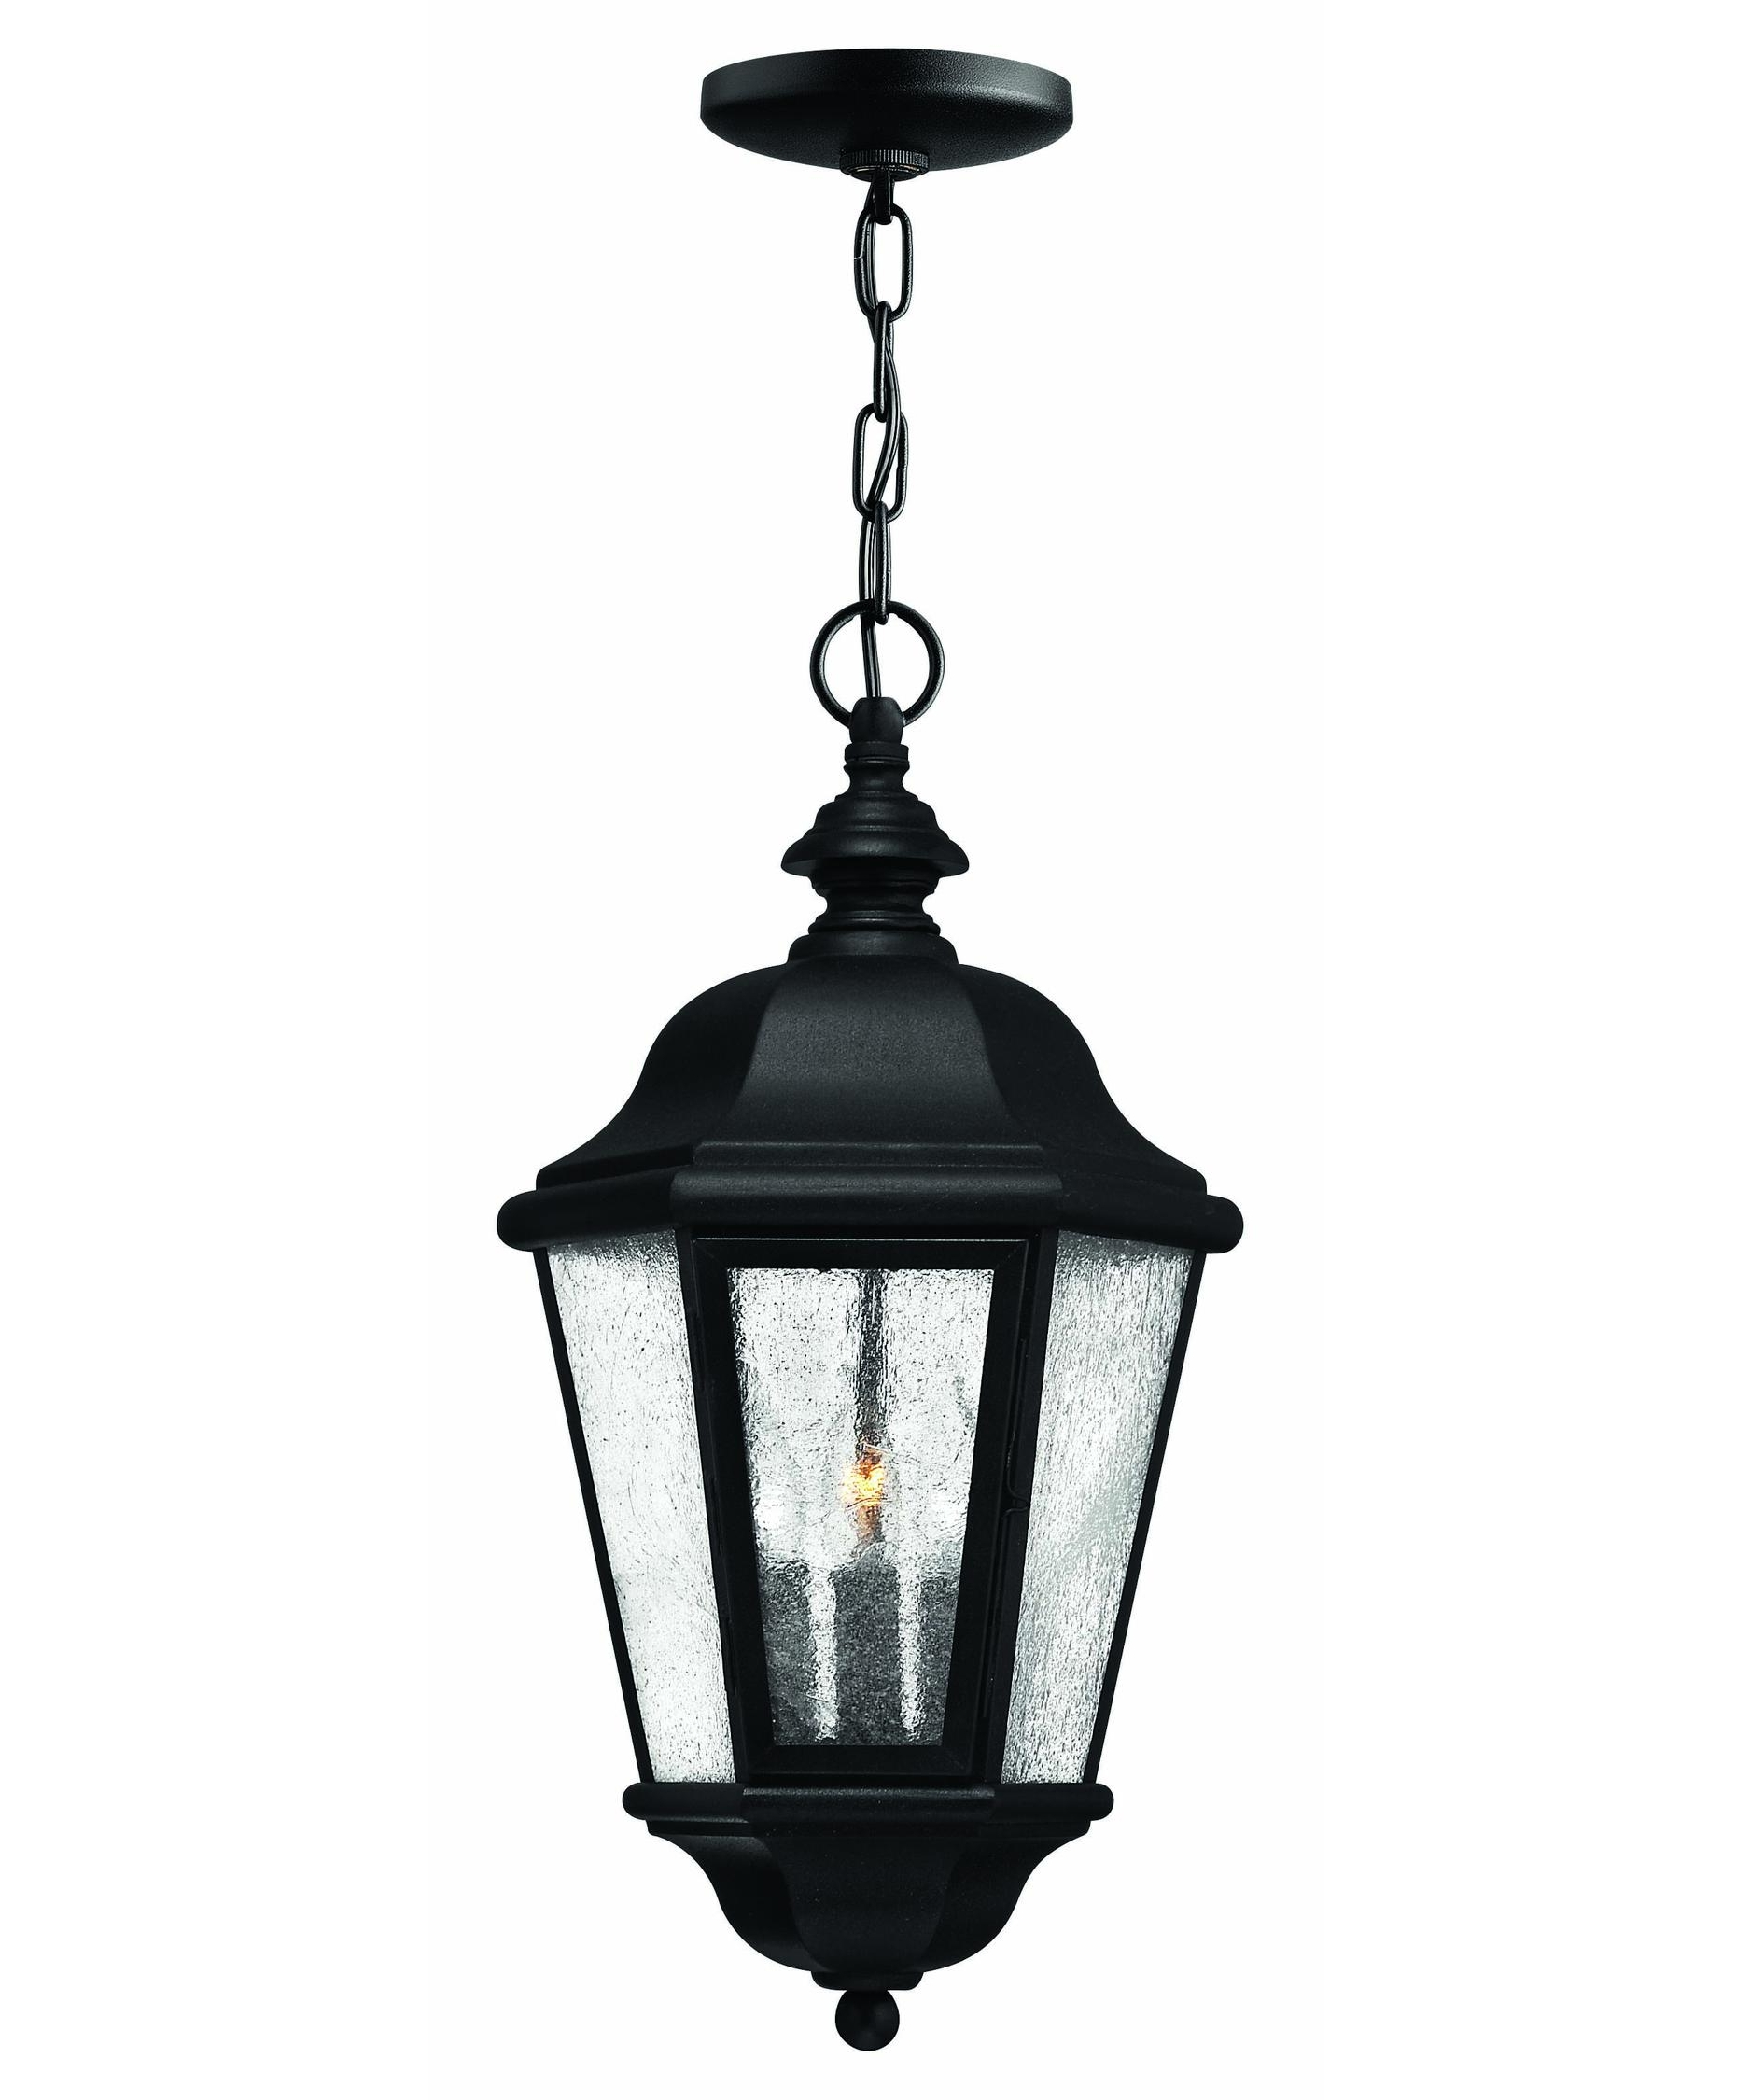 Recent Design Of Exterior Pendant Lights With Home Decorating Ideas Regarding White Outdoor Hanging